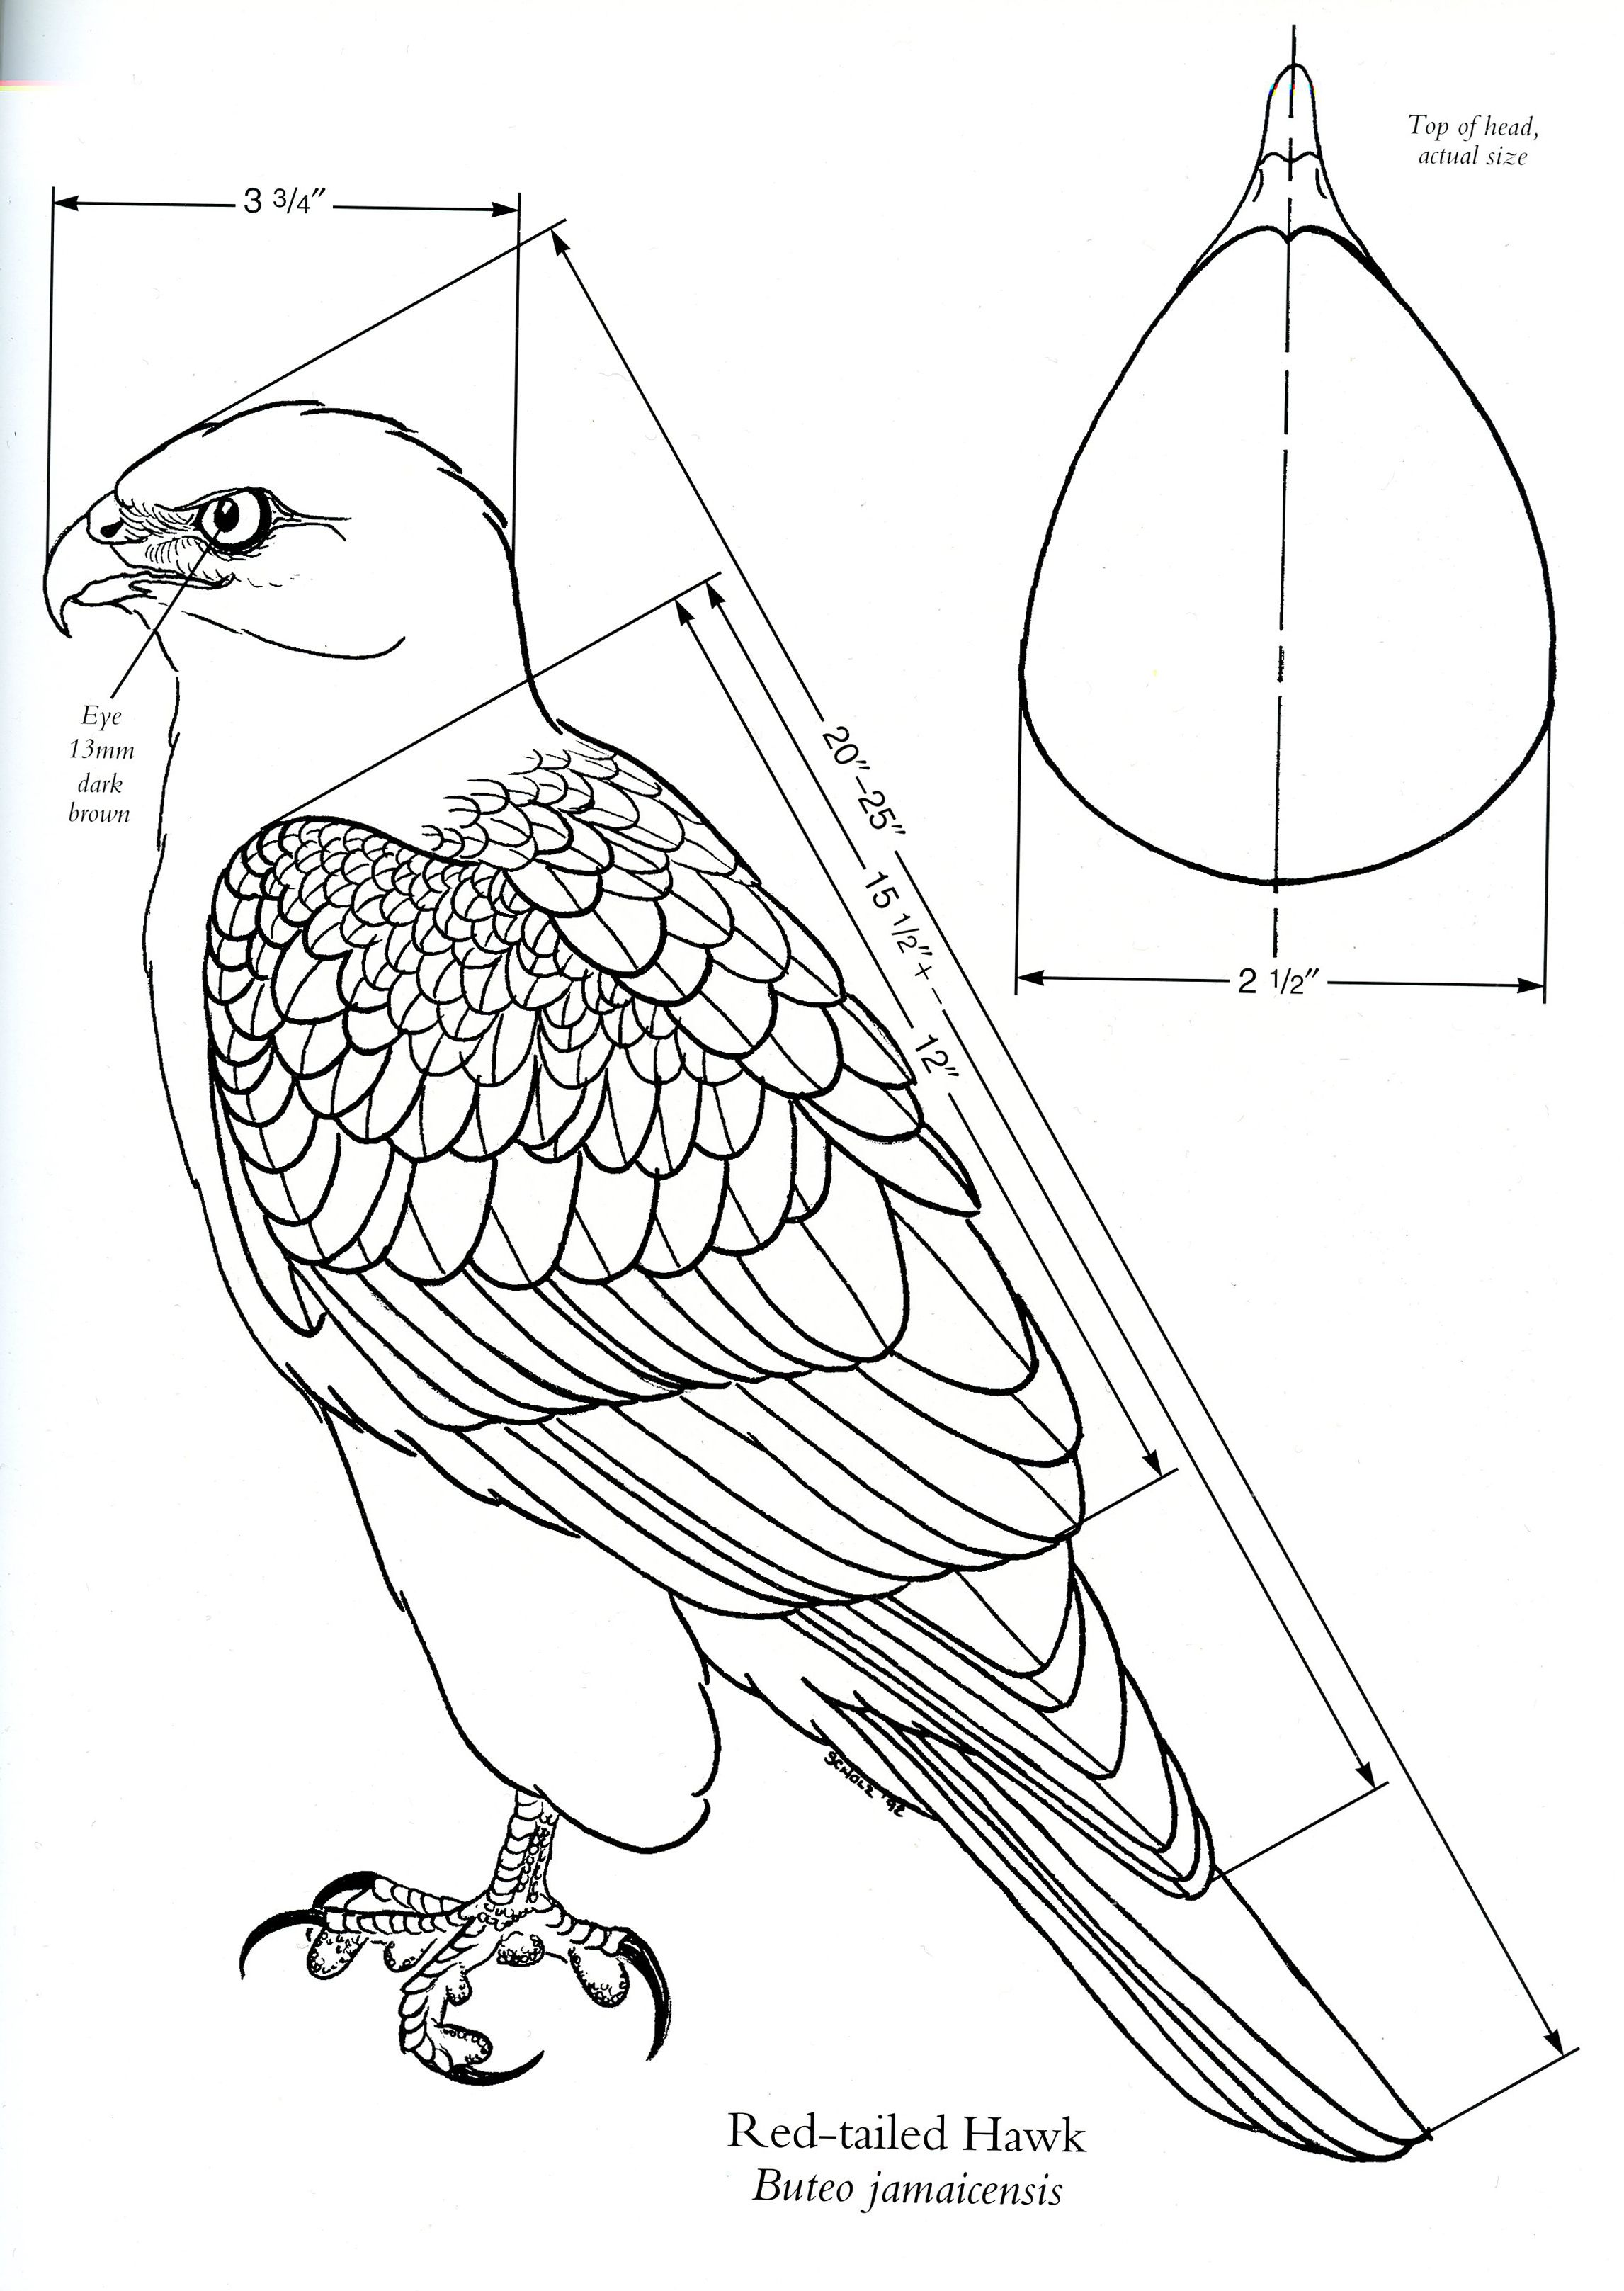 small resolution of diagram of a red tailed hawk source birds of prey by floyd scholz diagram wild turkey diagram of hawk